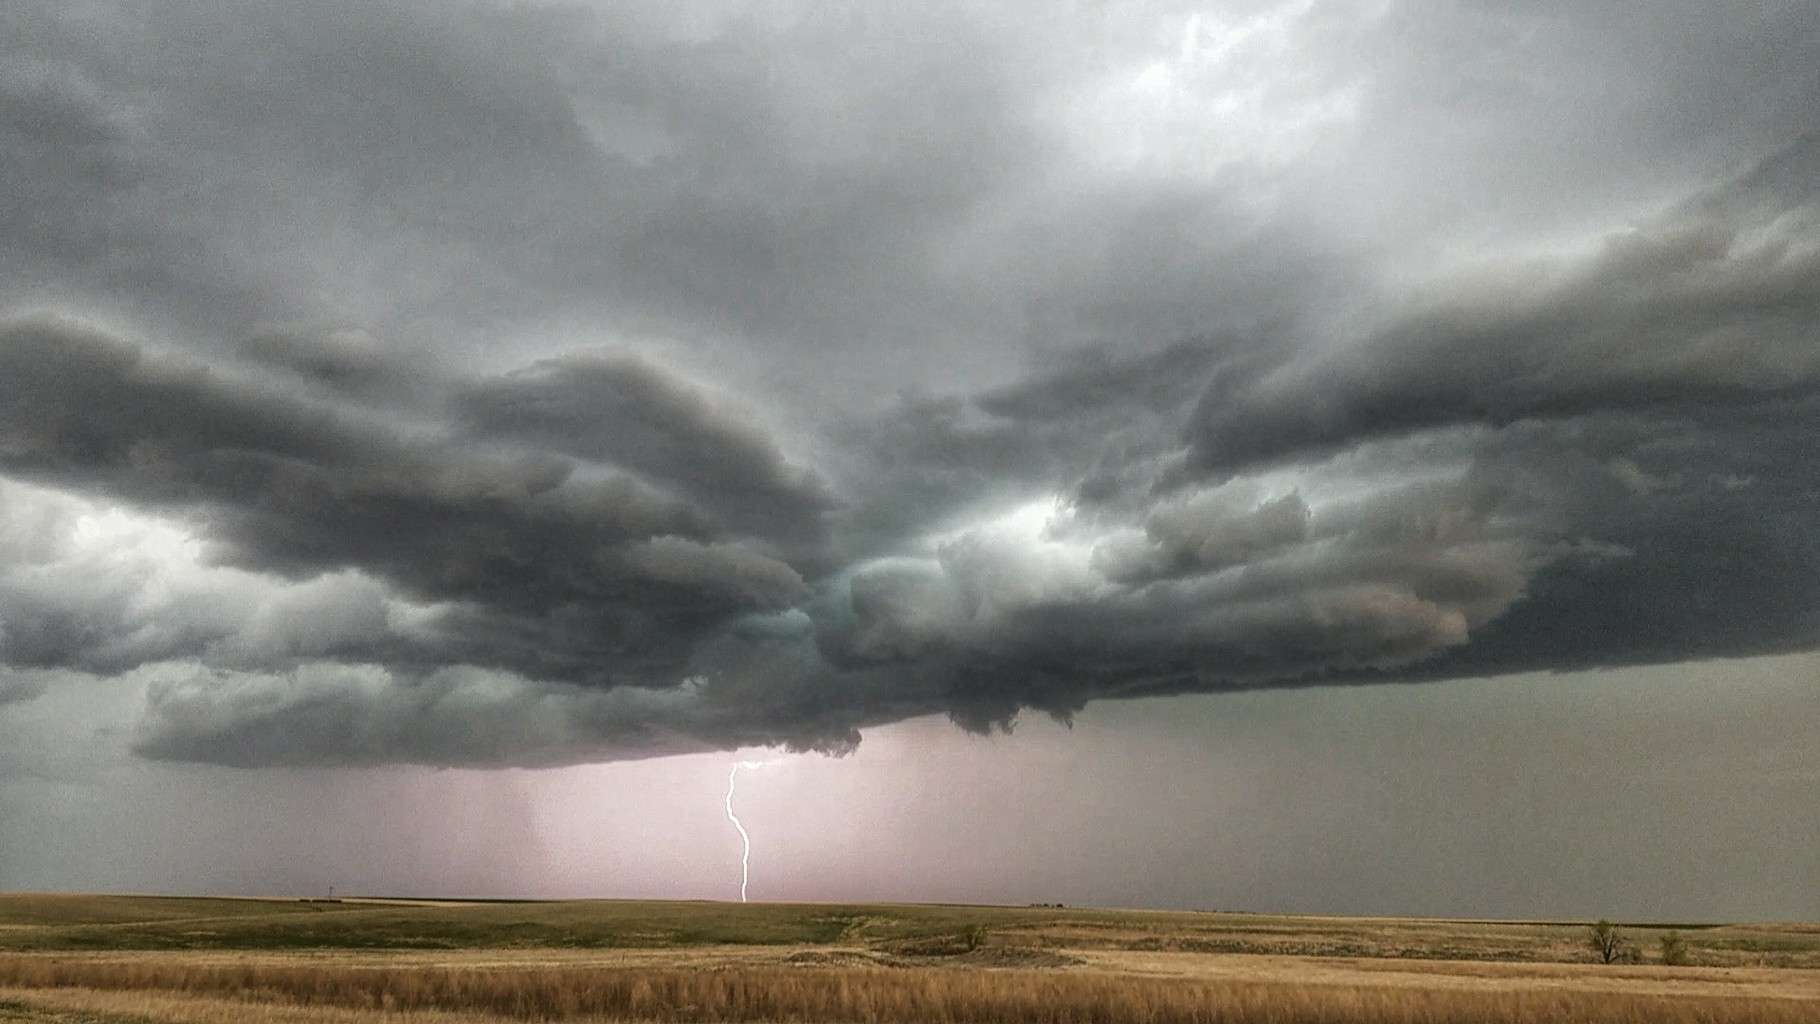 Helluva chase in Colorado today!